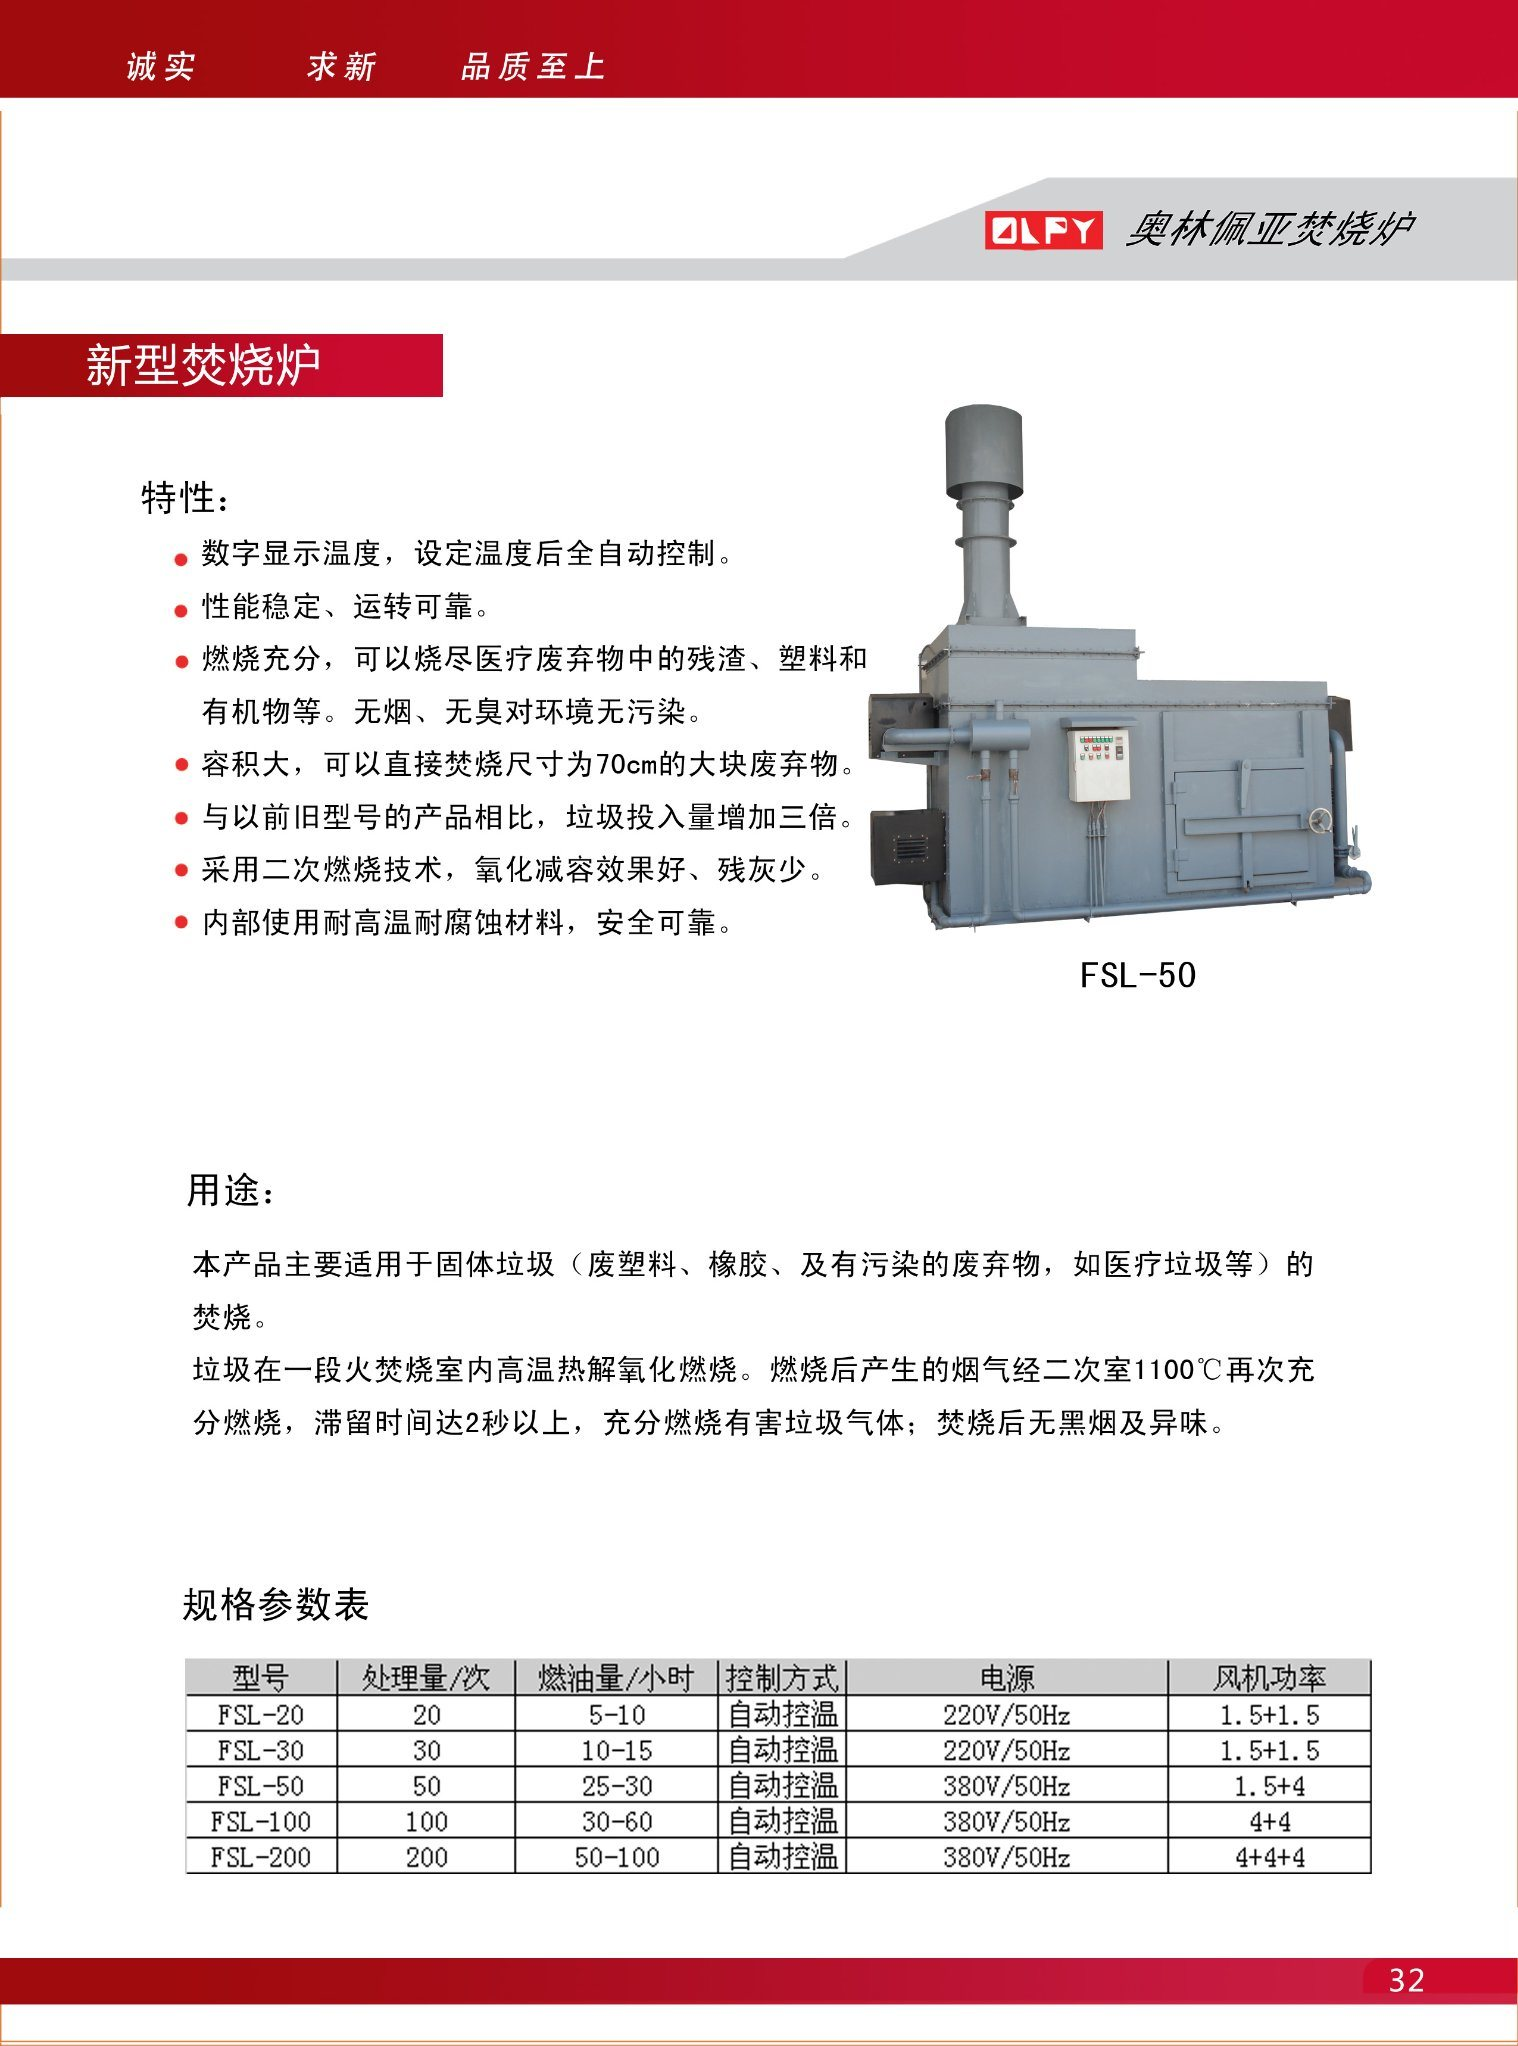 The Olpy Medical Waste Incinerator Without Secondary Pollution